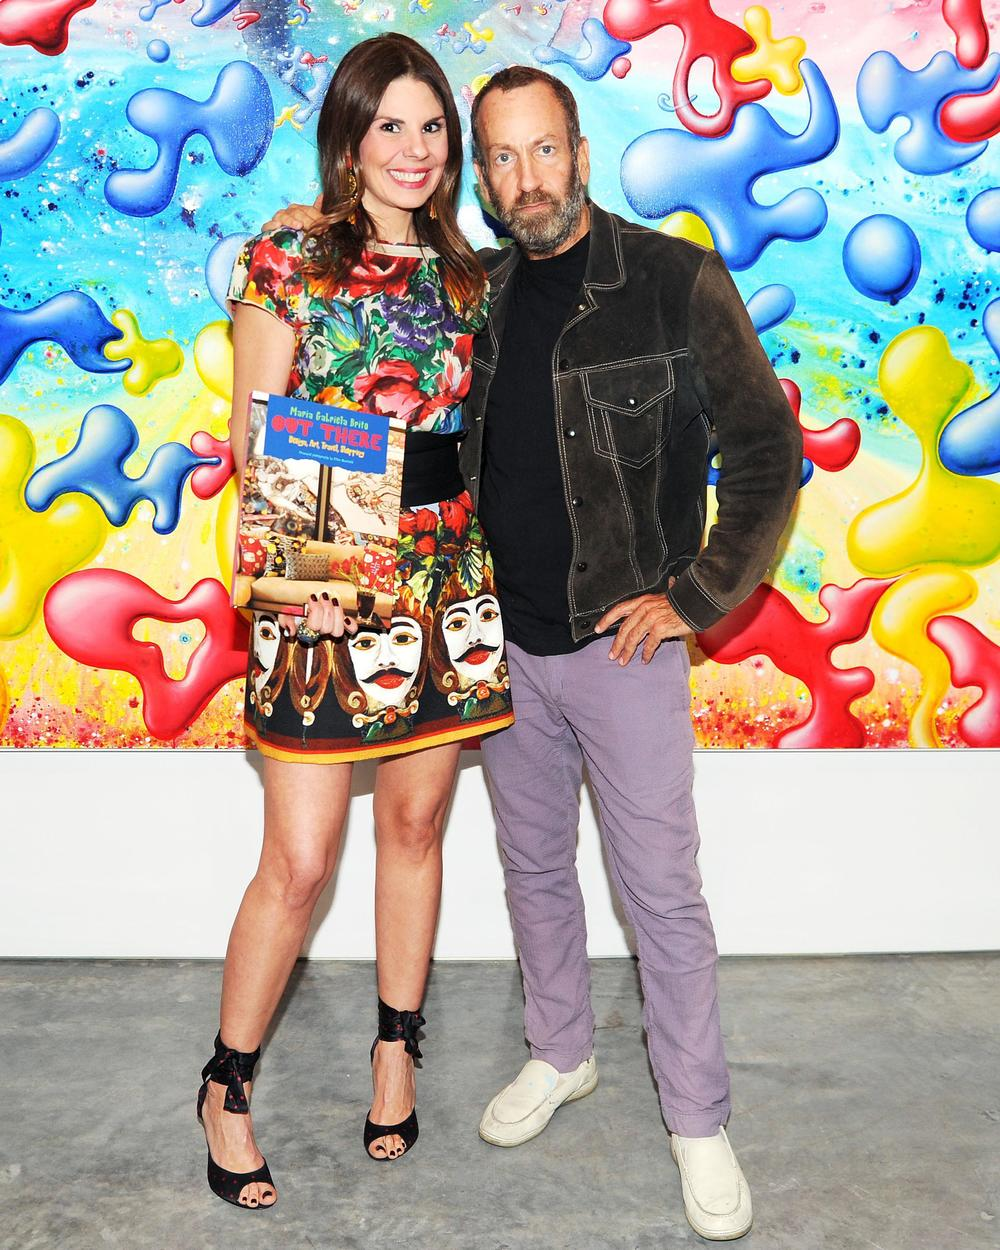 Kenny Scharf and I at my book launch at Paul Kasmin Gallery during Kenny's latest solo show